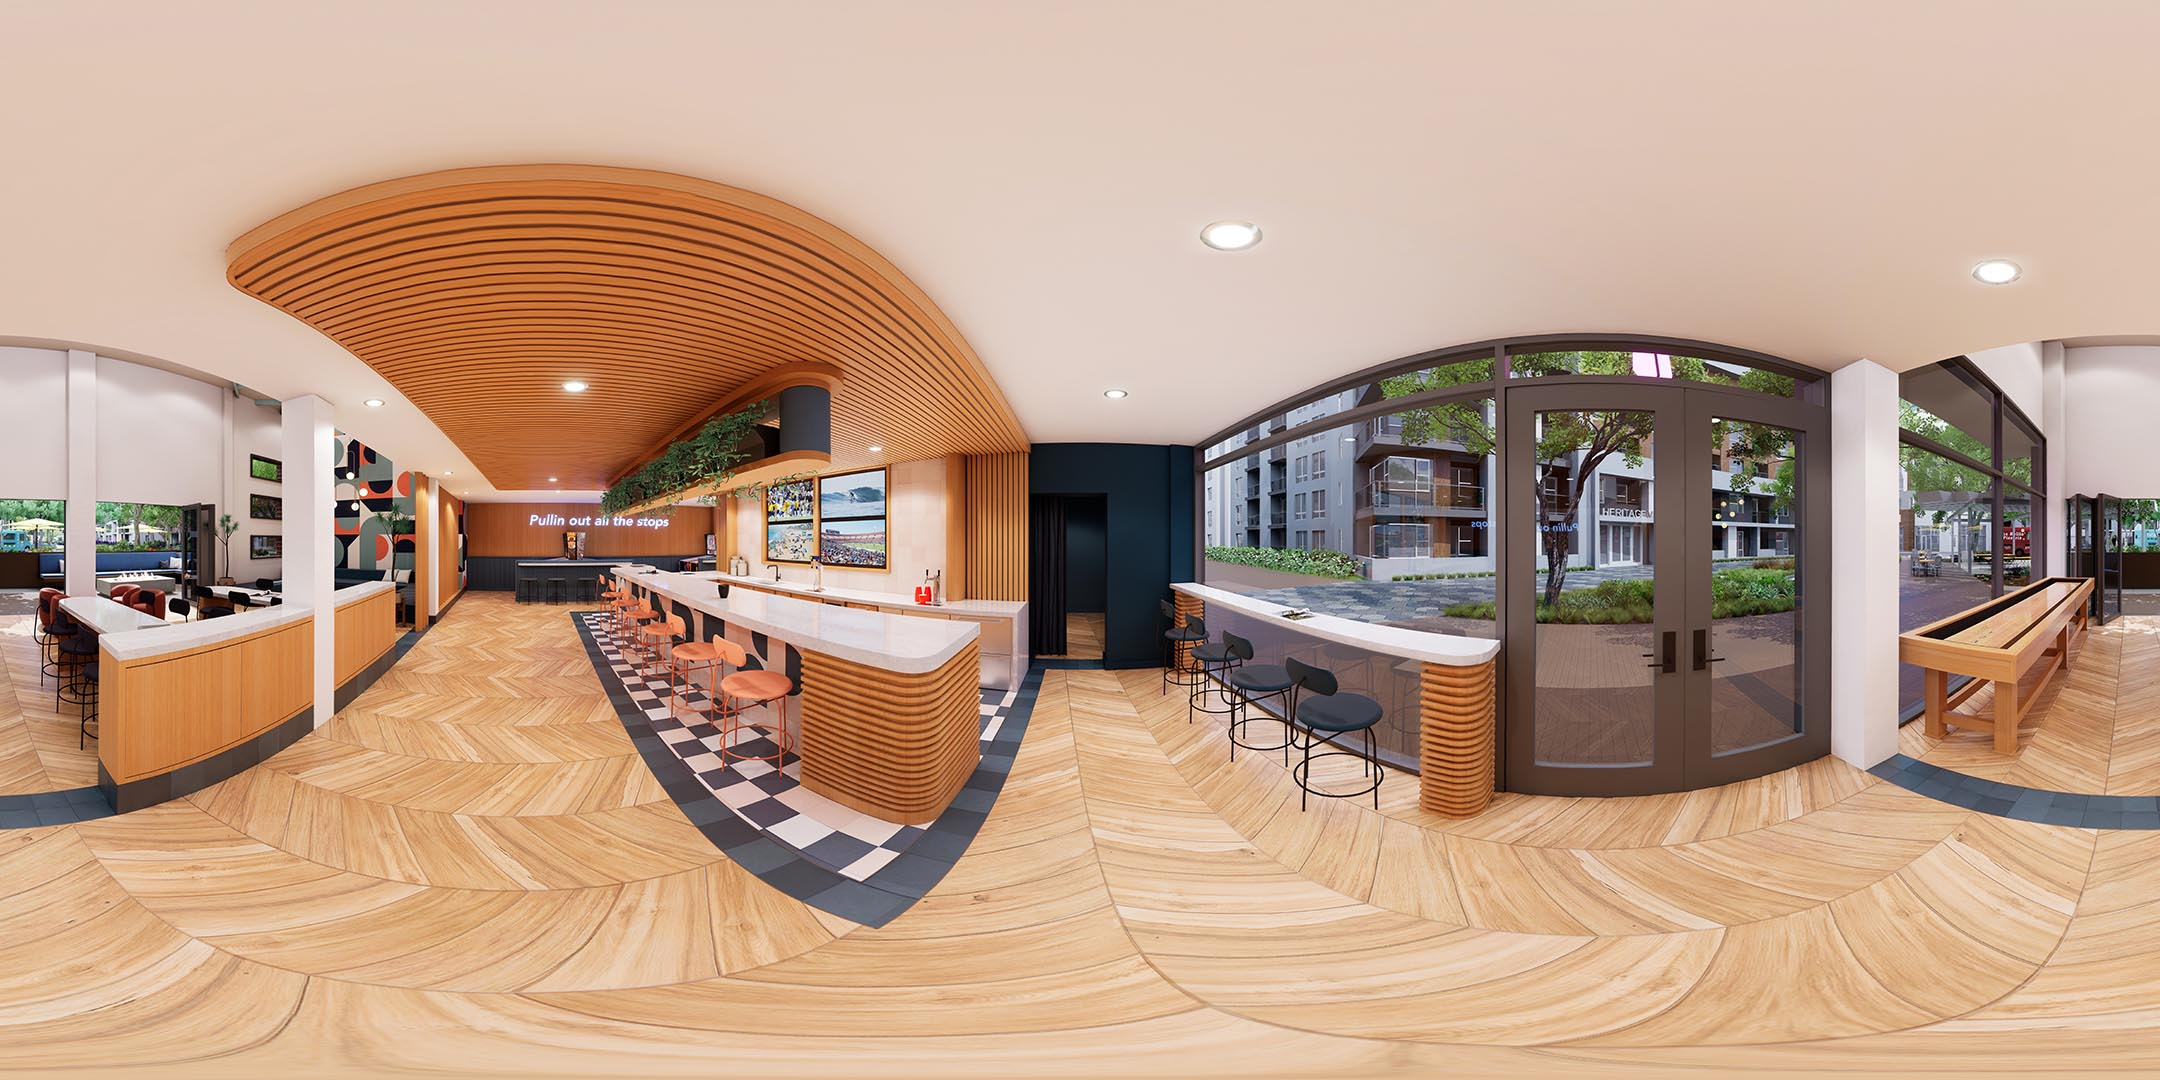 A 360 rendering of a bar area with stools and chairs